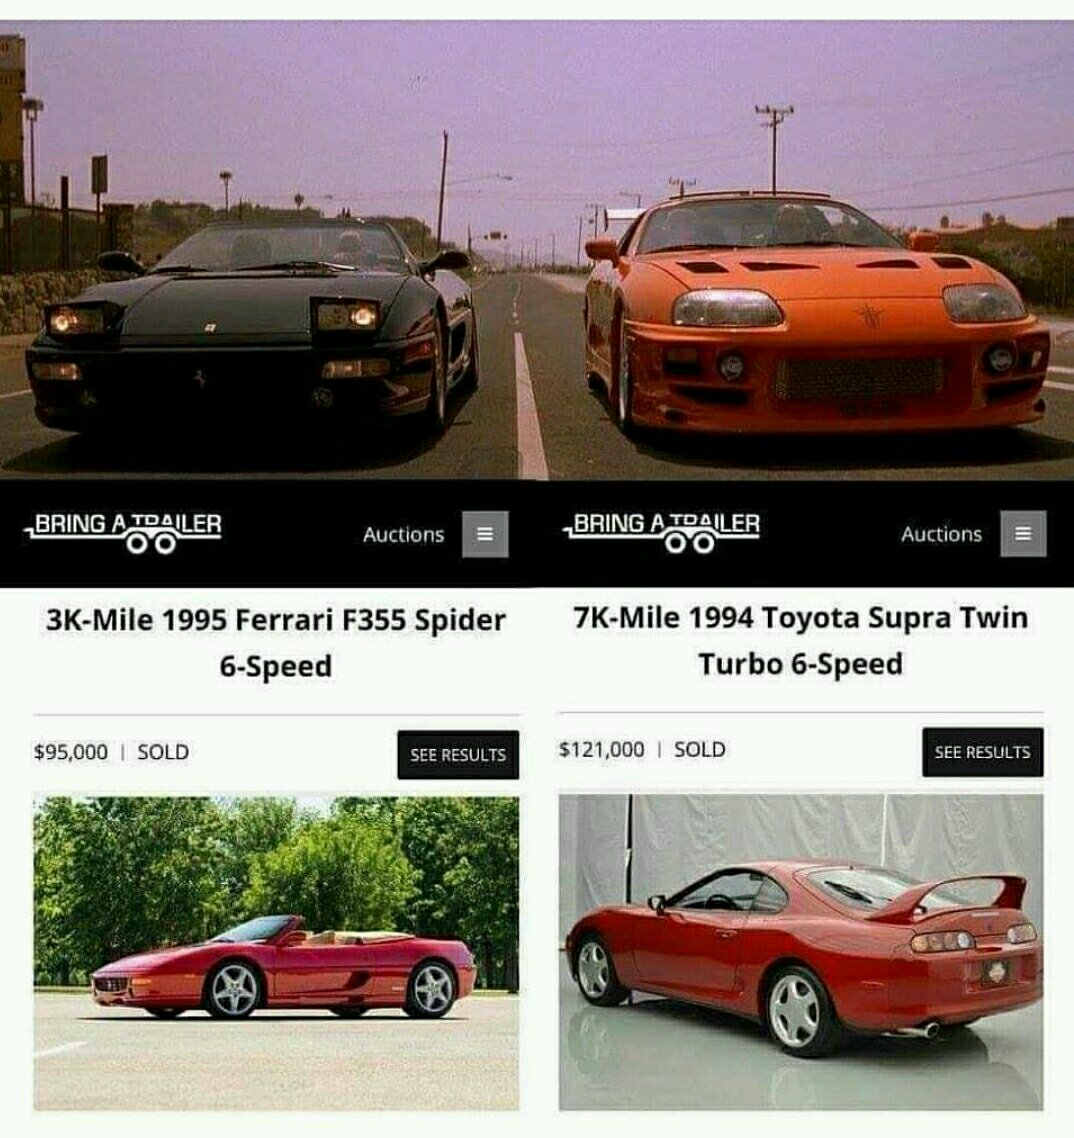 e521ab6717 A Toyota Supra Sold For $121,000 And The World's Gone Mad